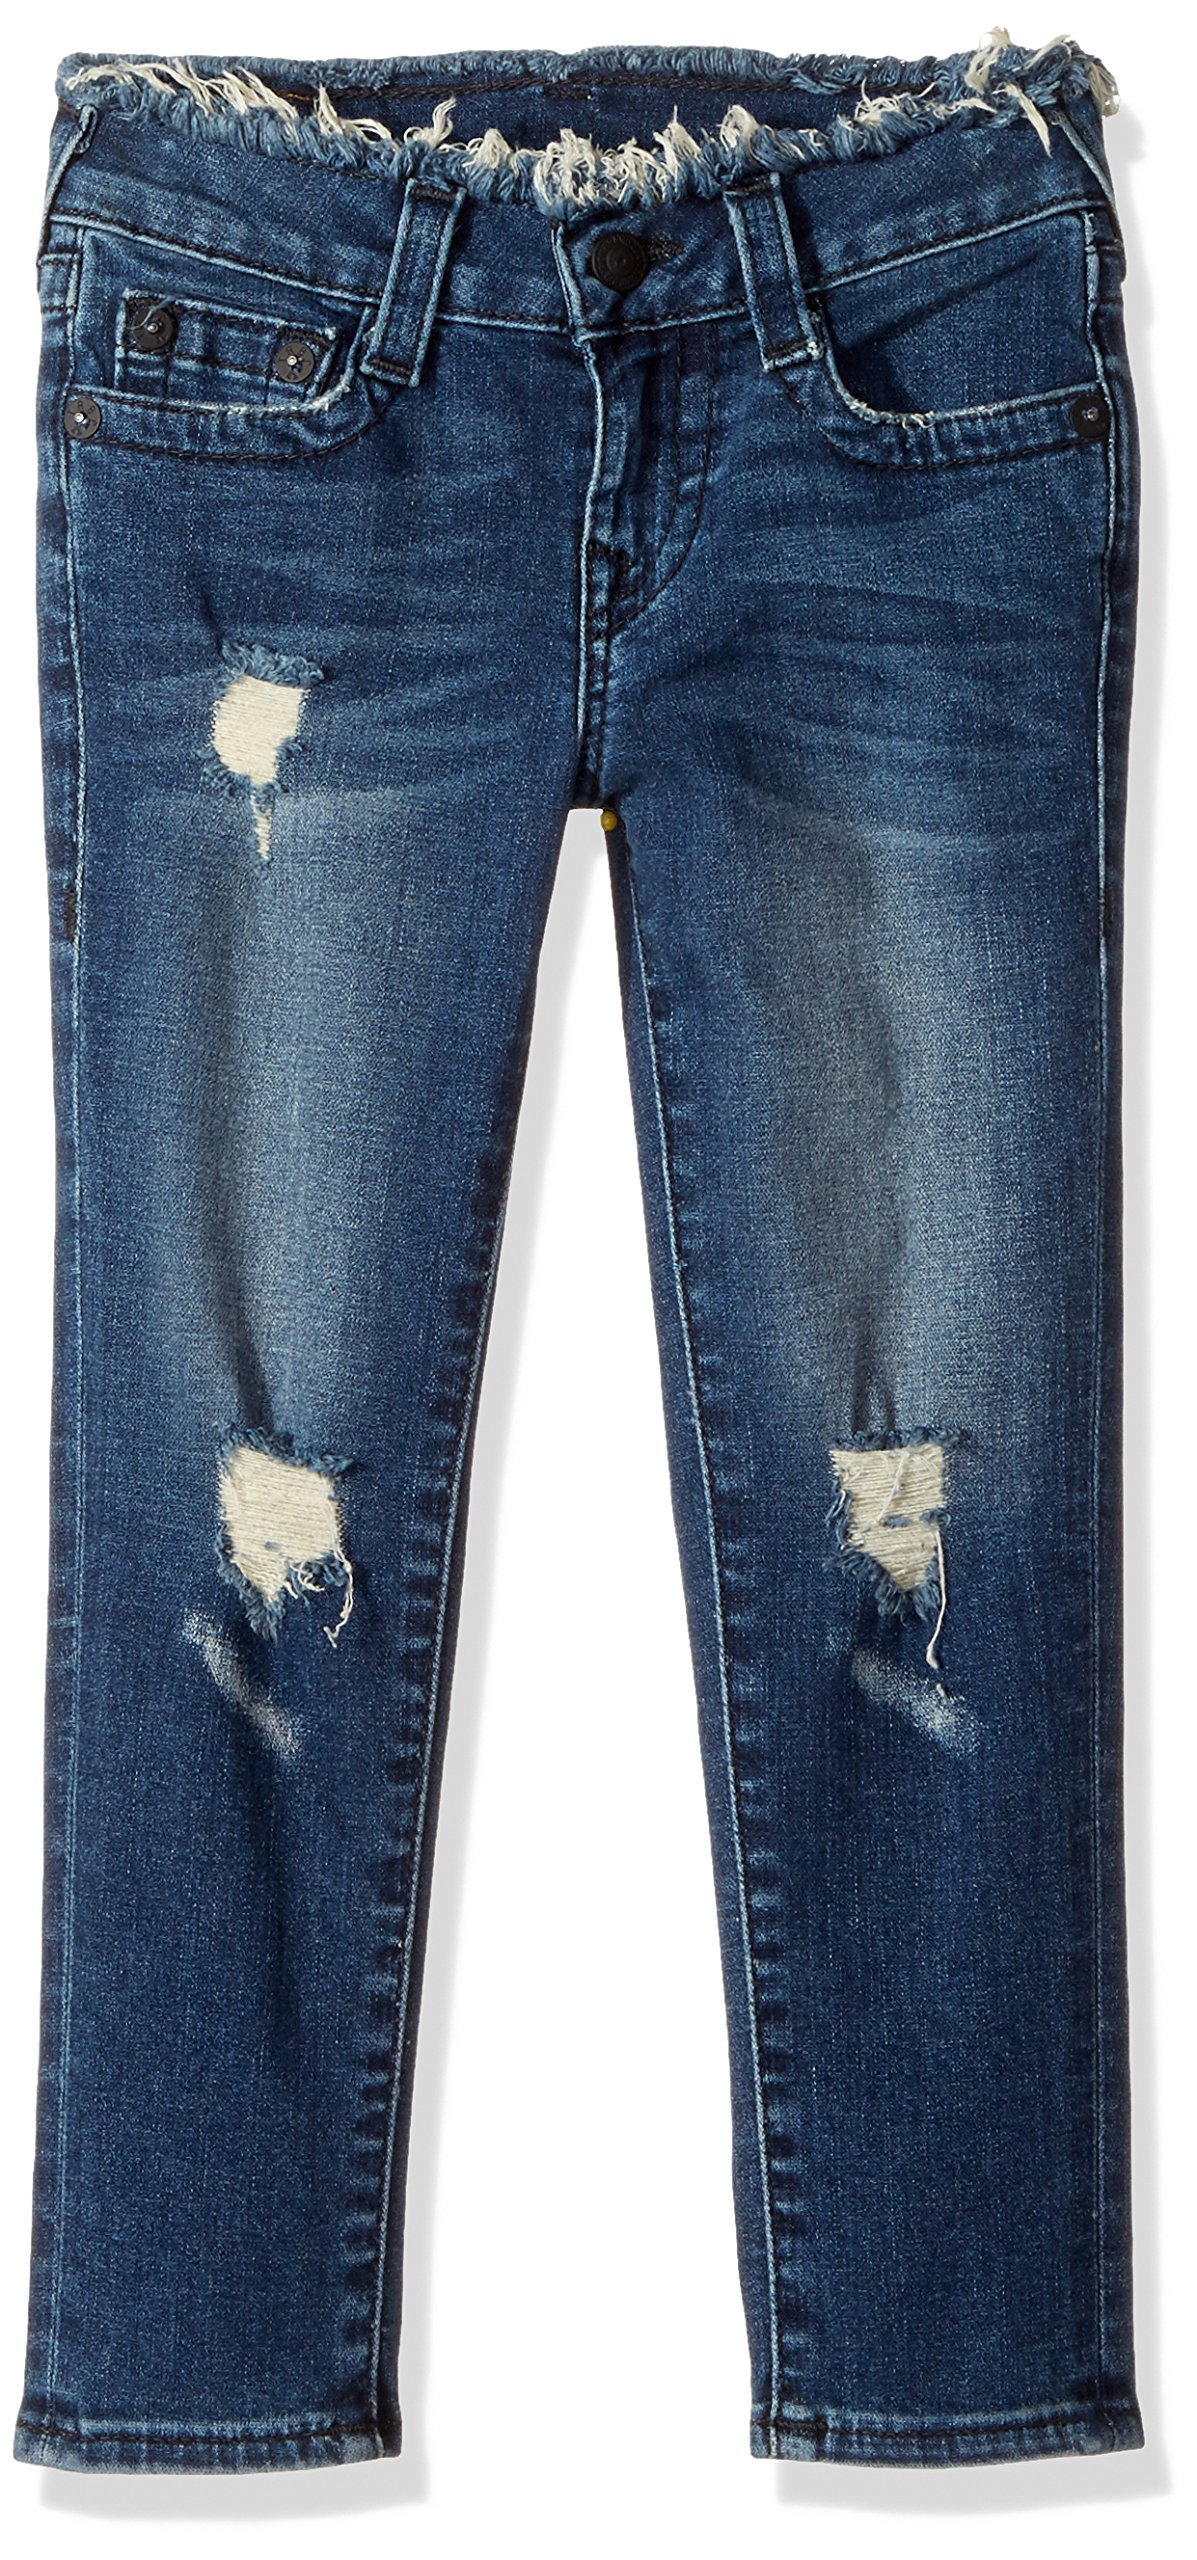 True Religion Toddler Girls' Casey Skinny Jean, Vintage Love, 3T by True Religion (Image #1)